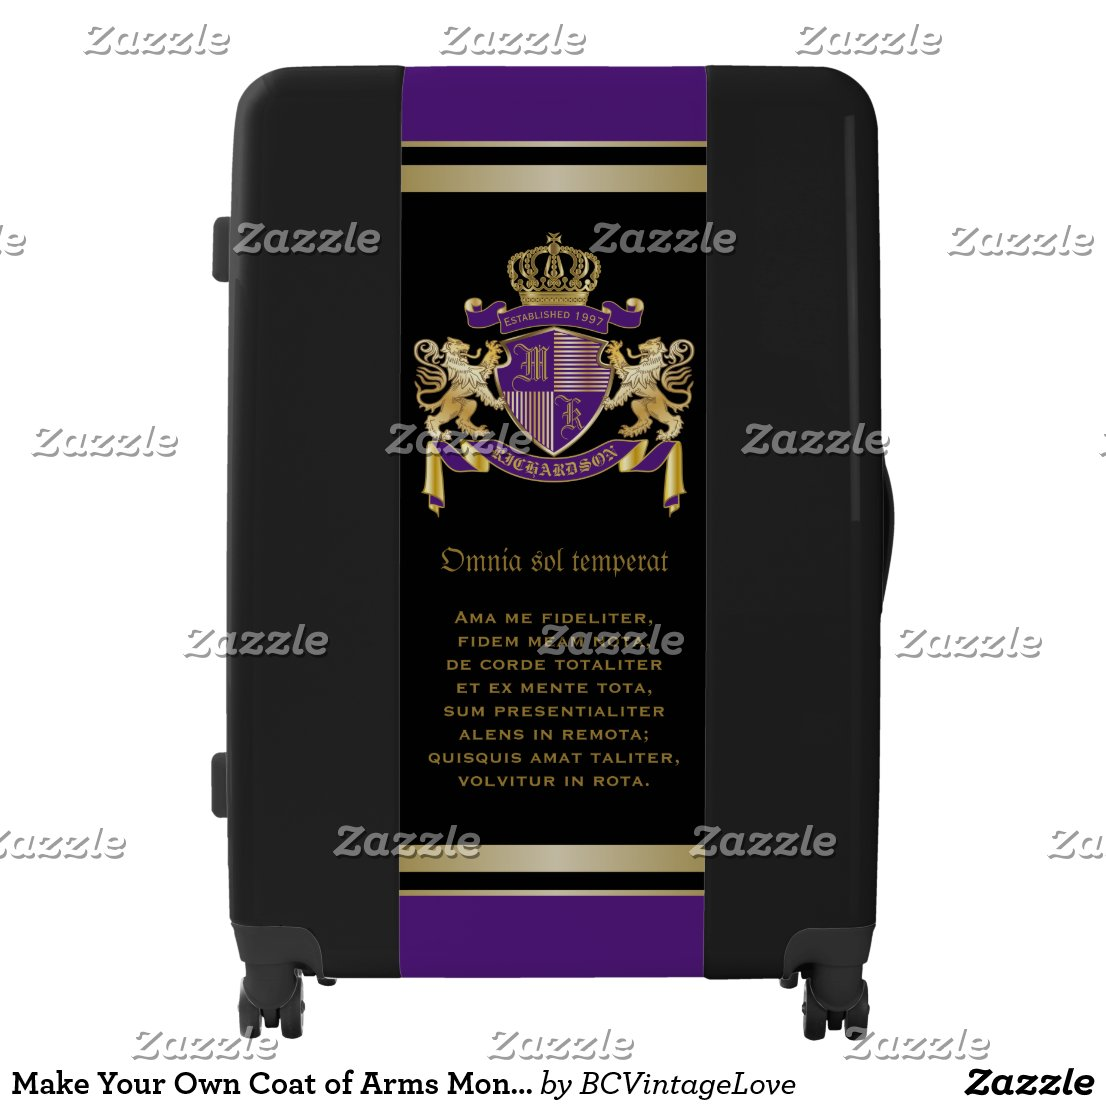 Make Your Own Coat of Arms Monogram Crown Emblem Luggage